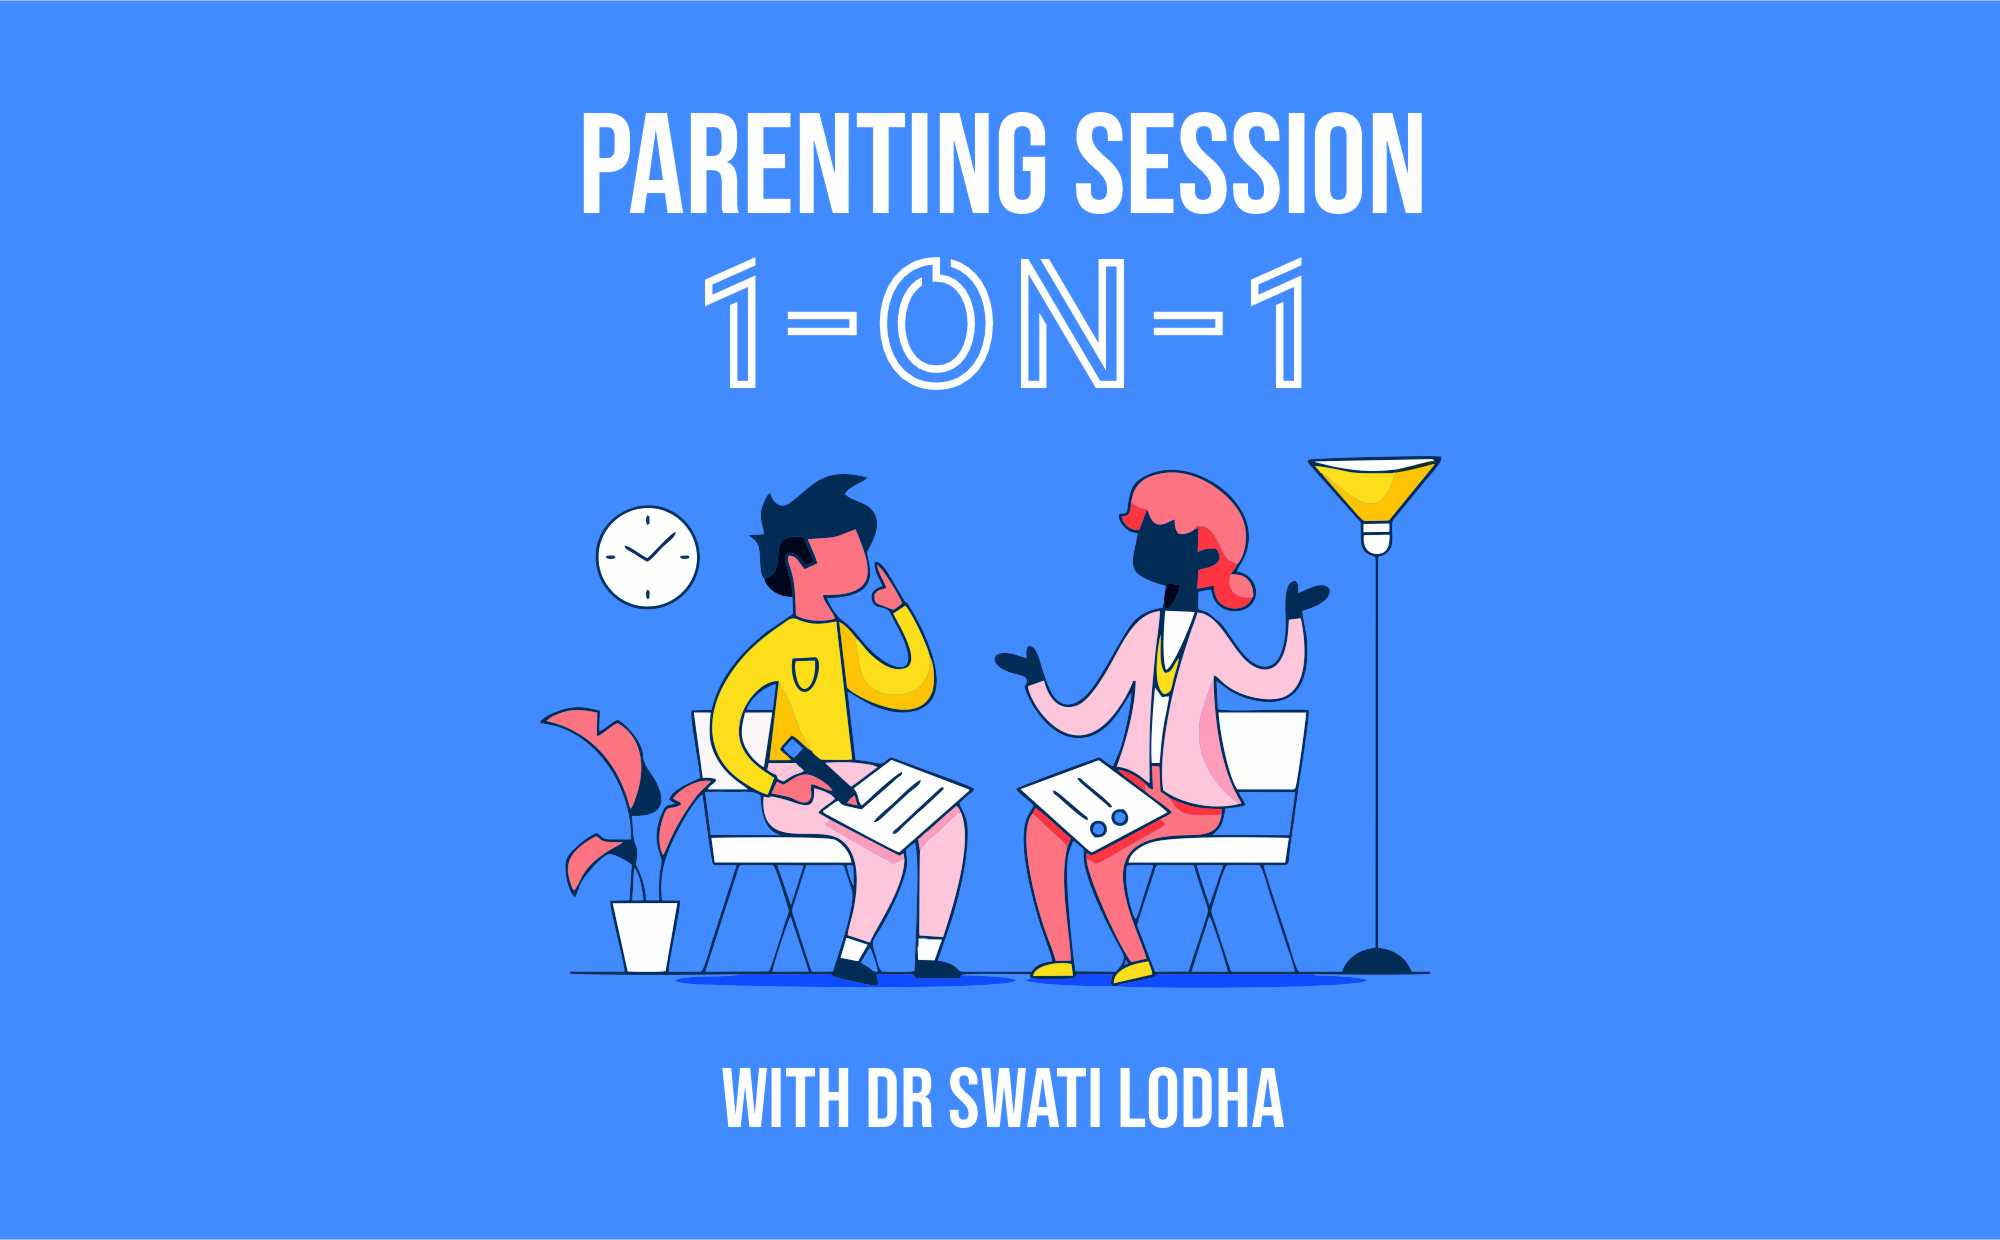 1-ON-1 Parenting Session